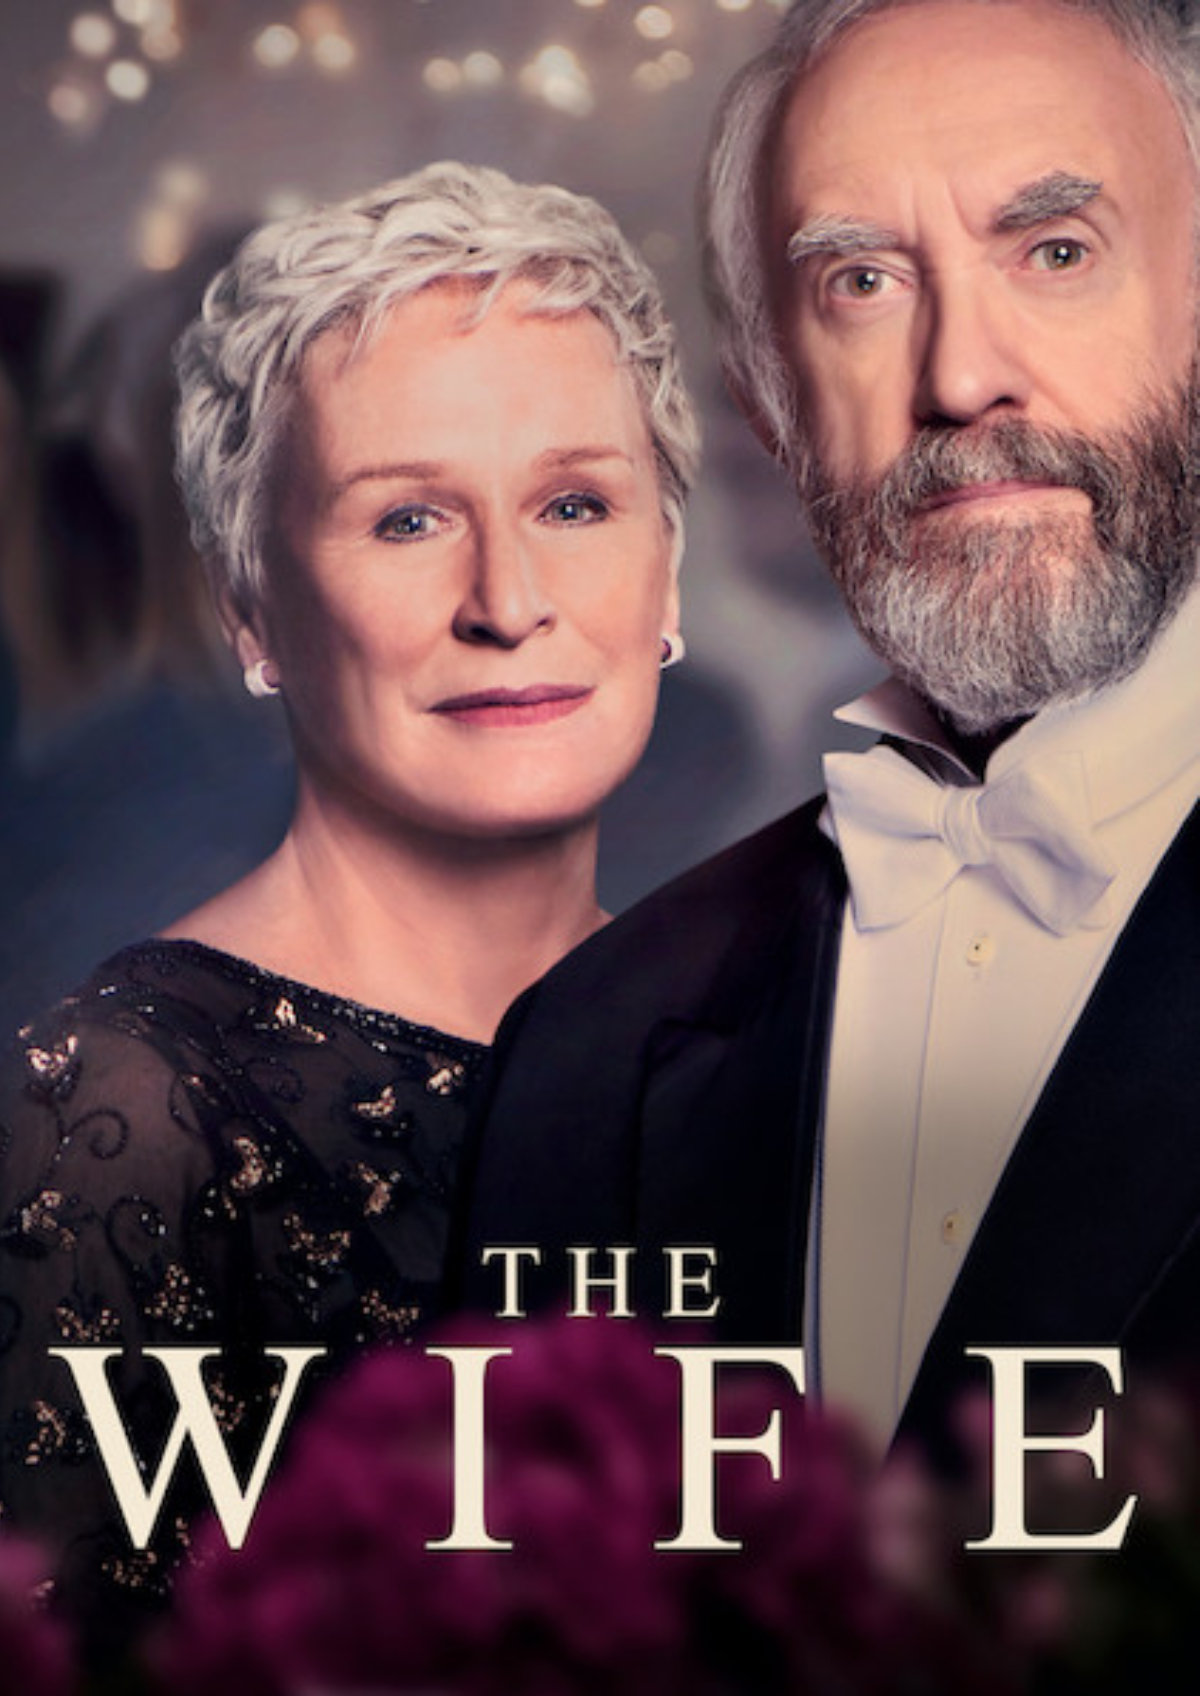 'The Wife' movie poster